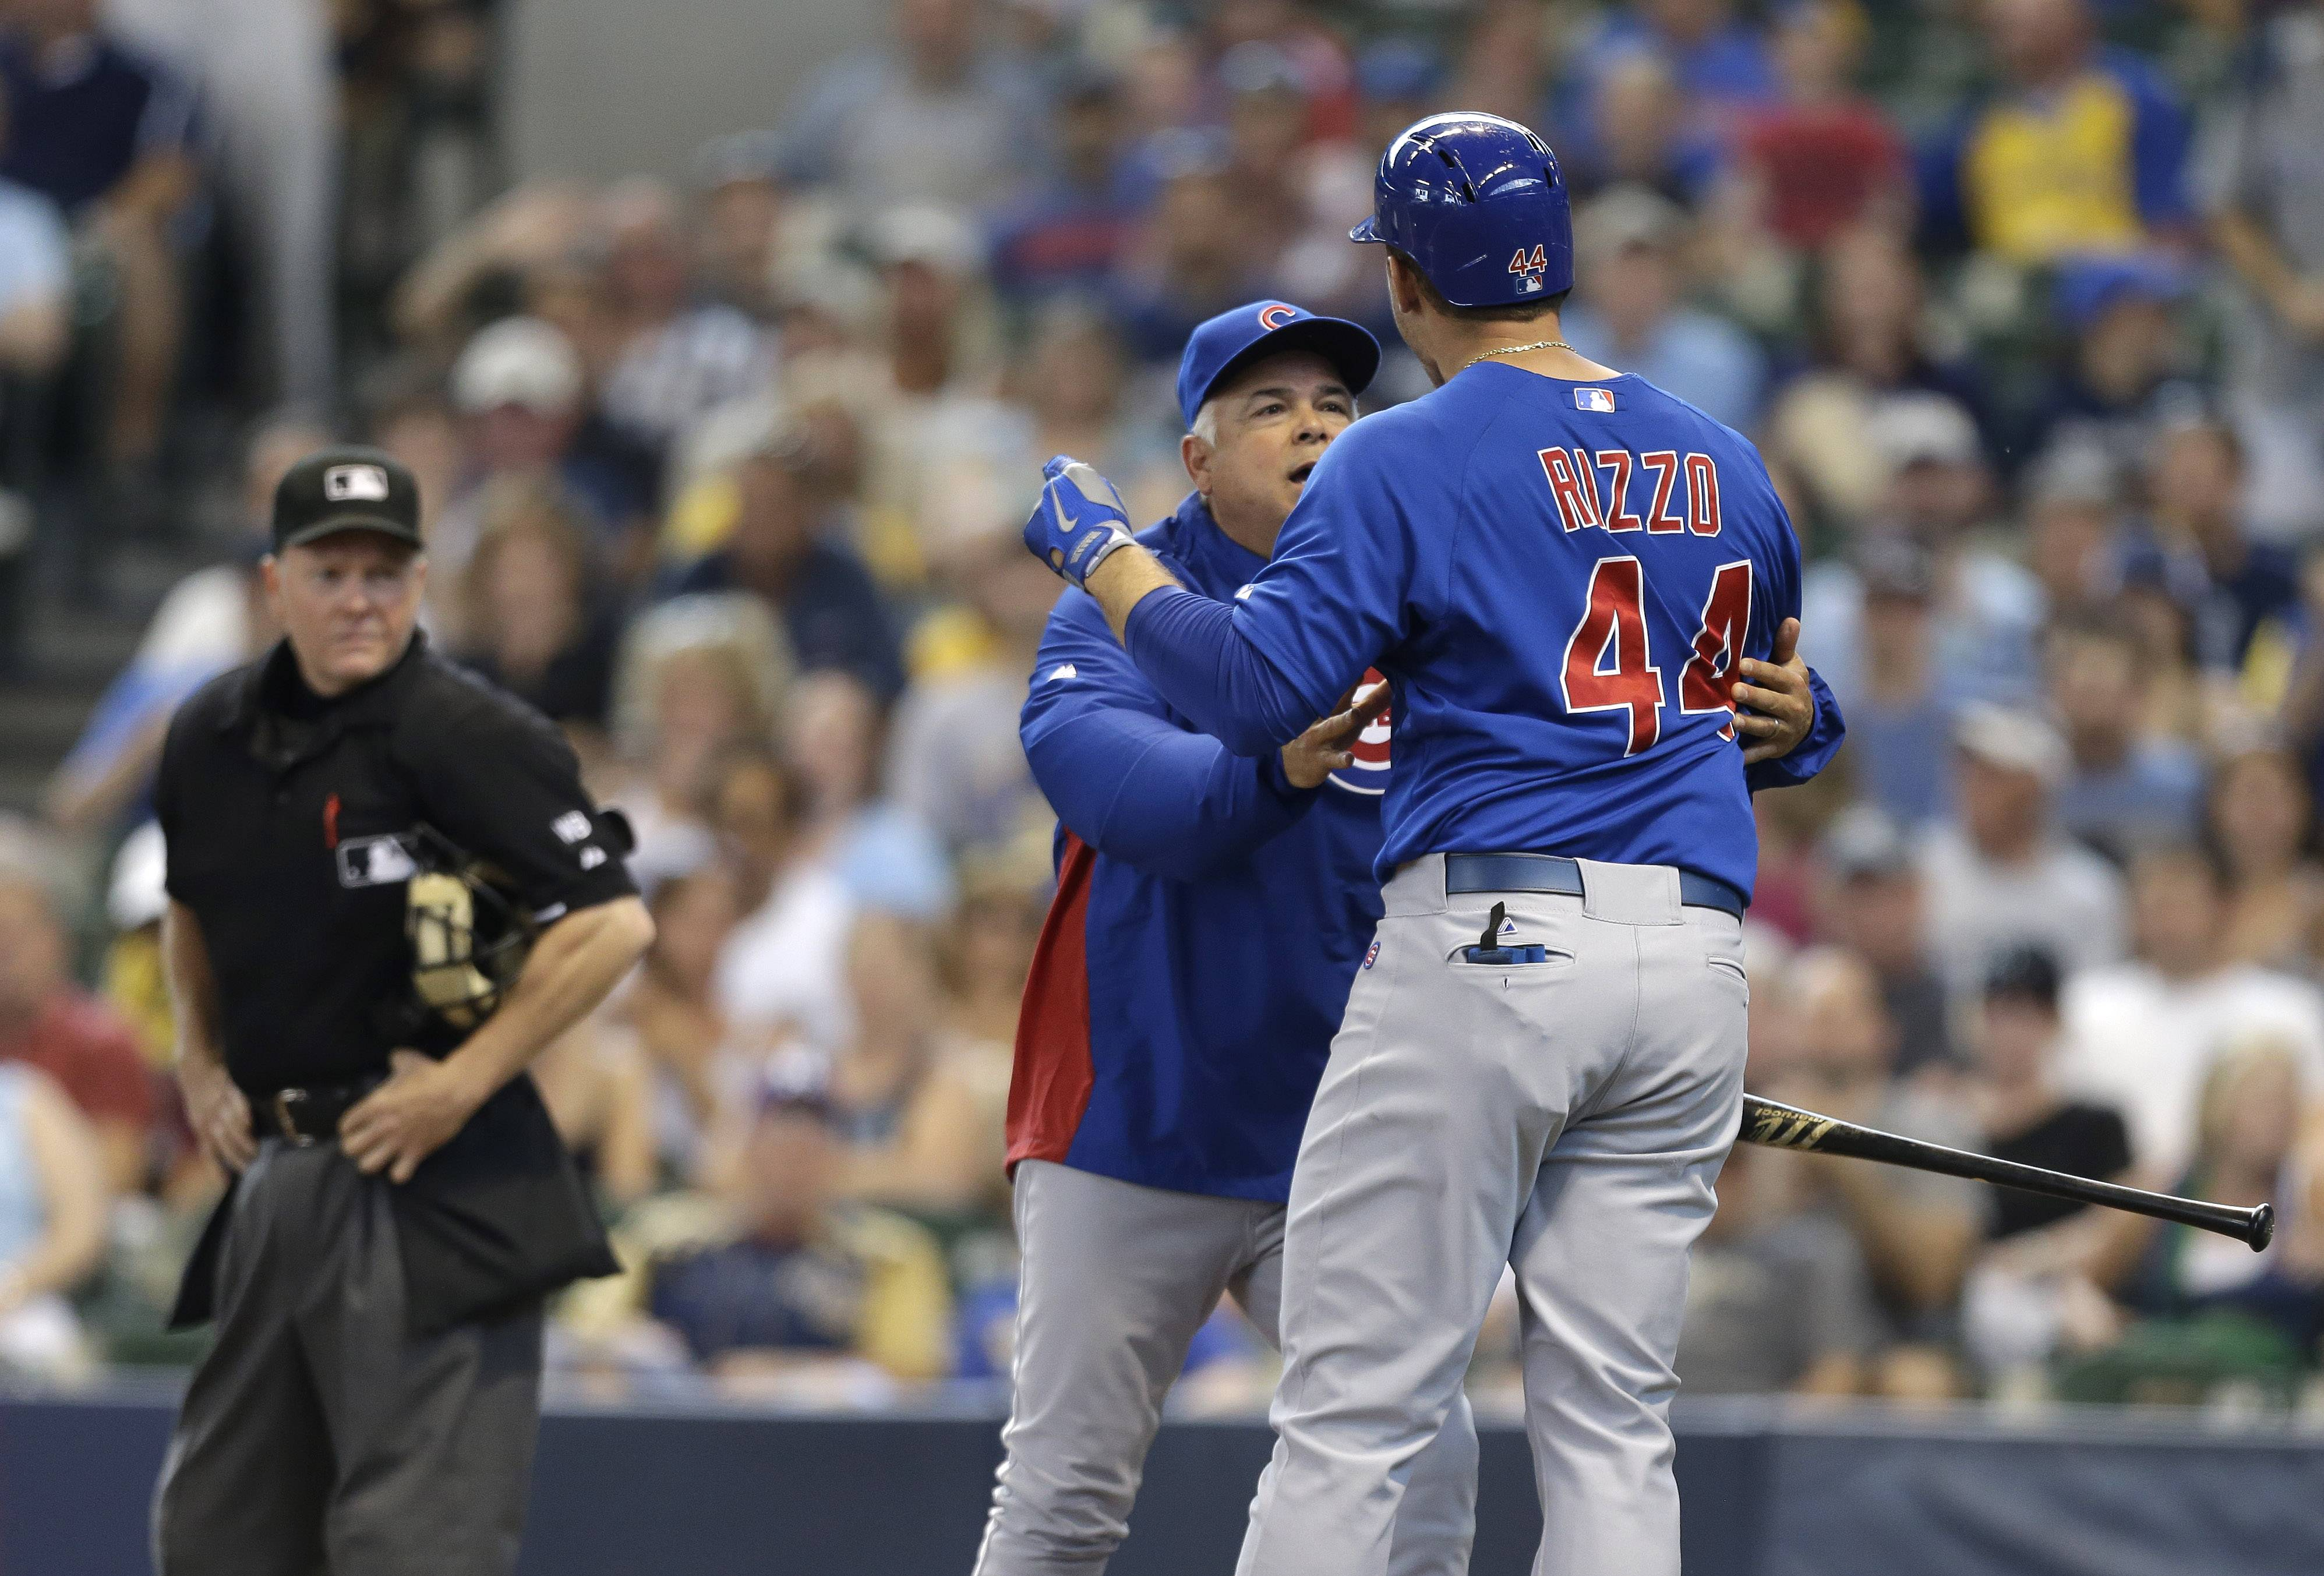 Rick Renteria tries to restrain Anthony Rizzo, who argues with home-plate umpire Jerry Meals in a loss to the Brewers on Sunday. With one-third of the season in the books, Rizzo is hitting .267 with 10 home runs at 28 RBI.